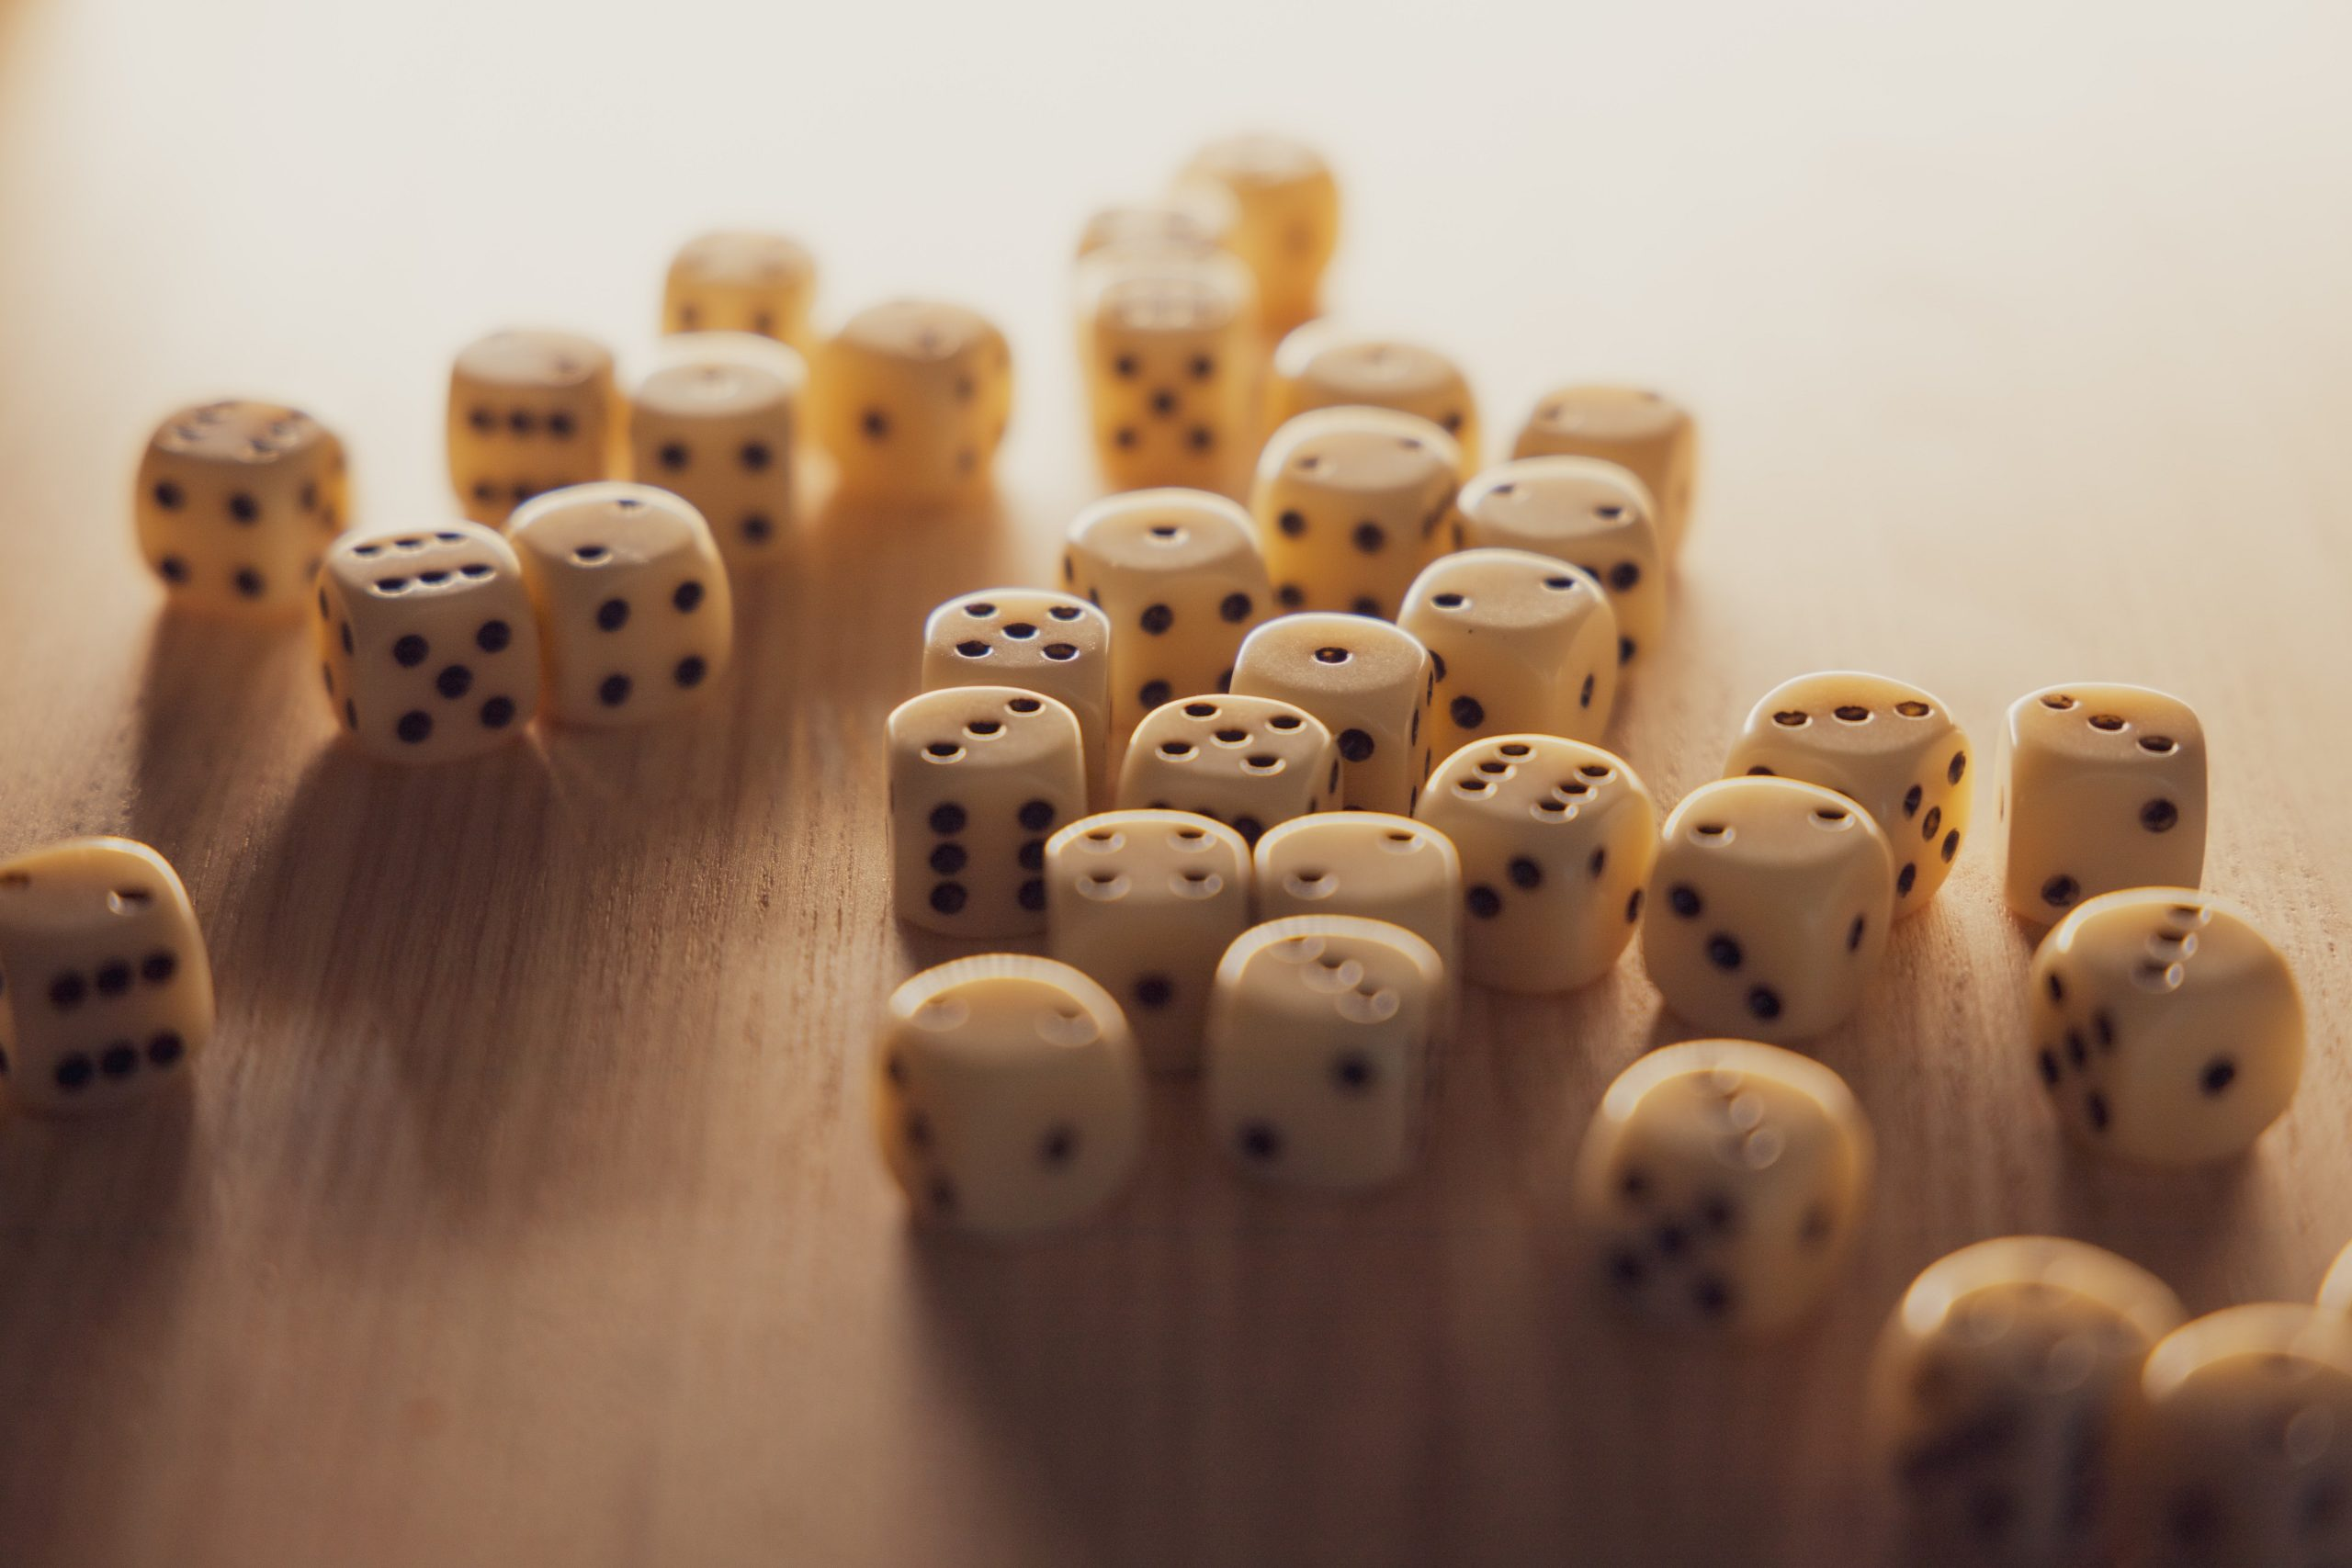 dices wallpapers hd